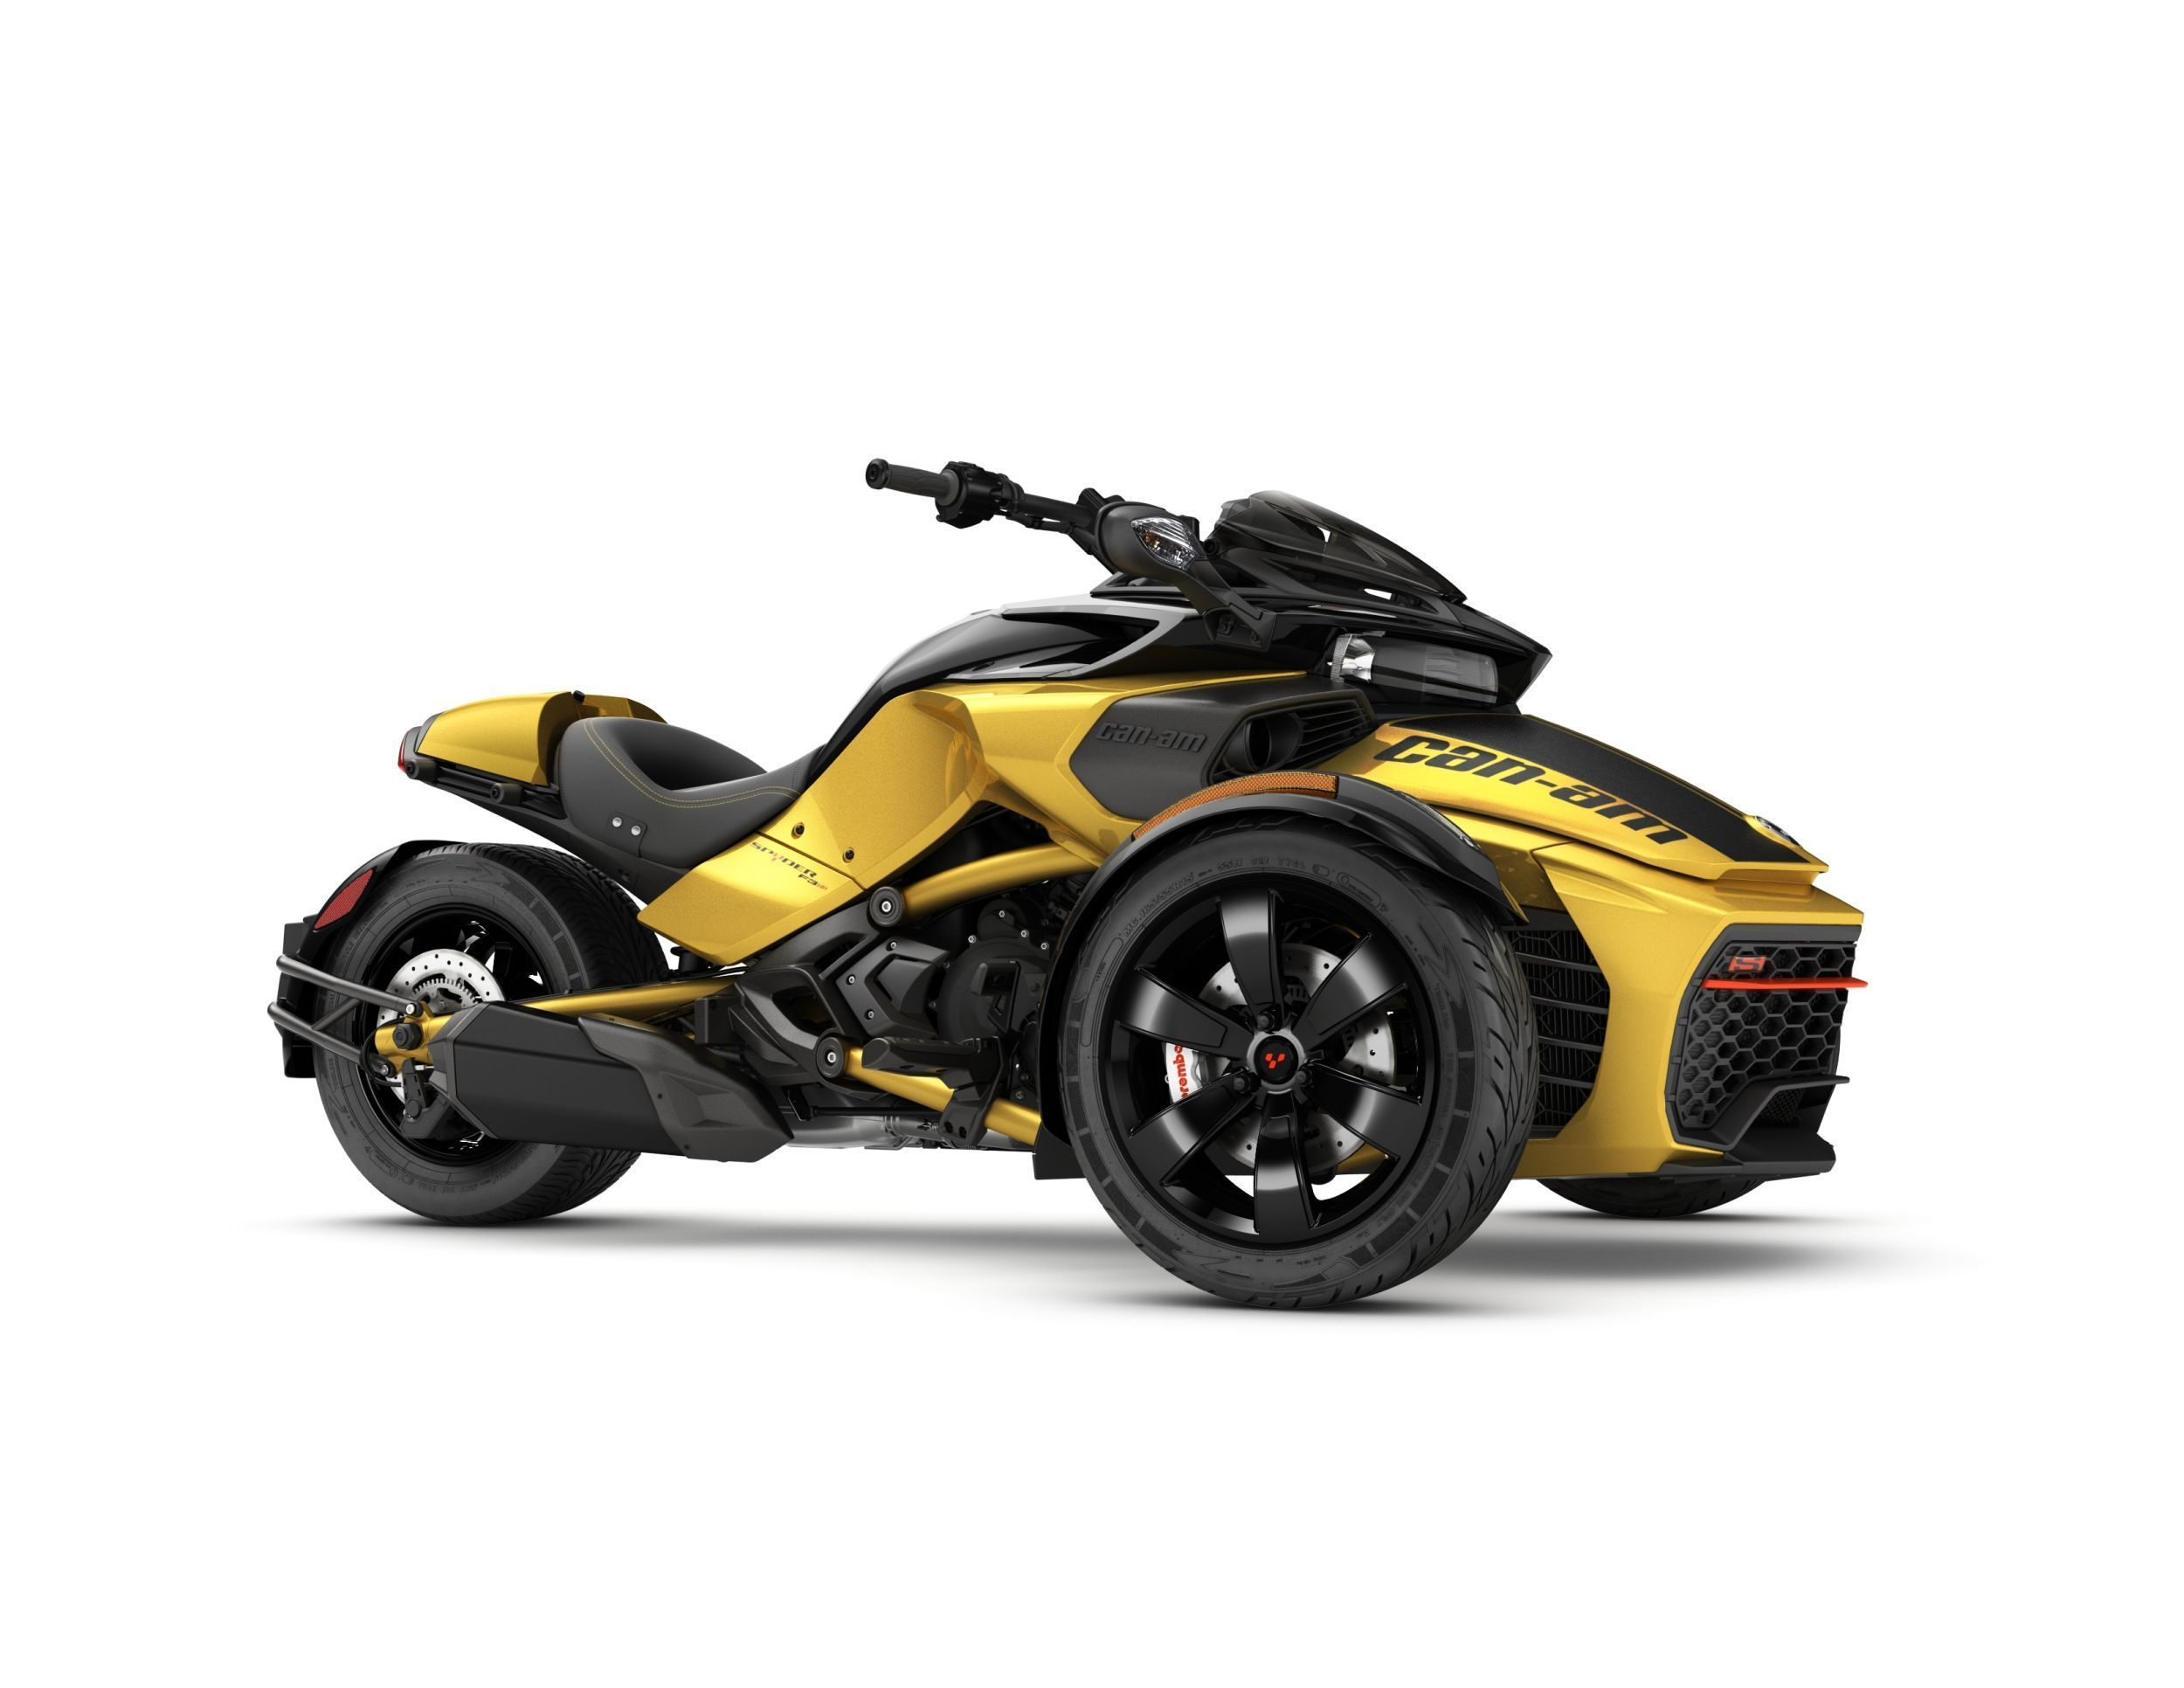 gebrauchte can am spyder f3 s daytona 500 motorr der kaufen. Black Bedroom Furniture Sets. Home Design Ideas